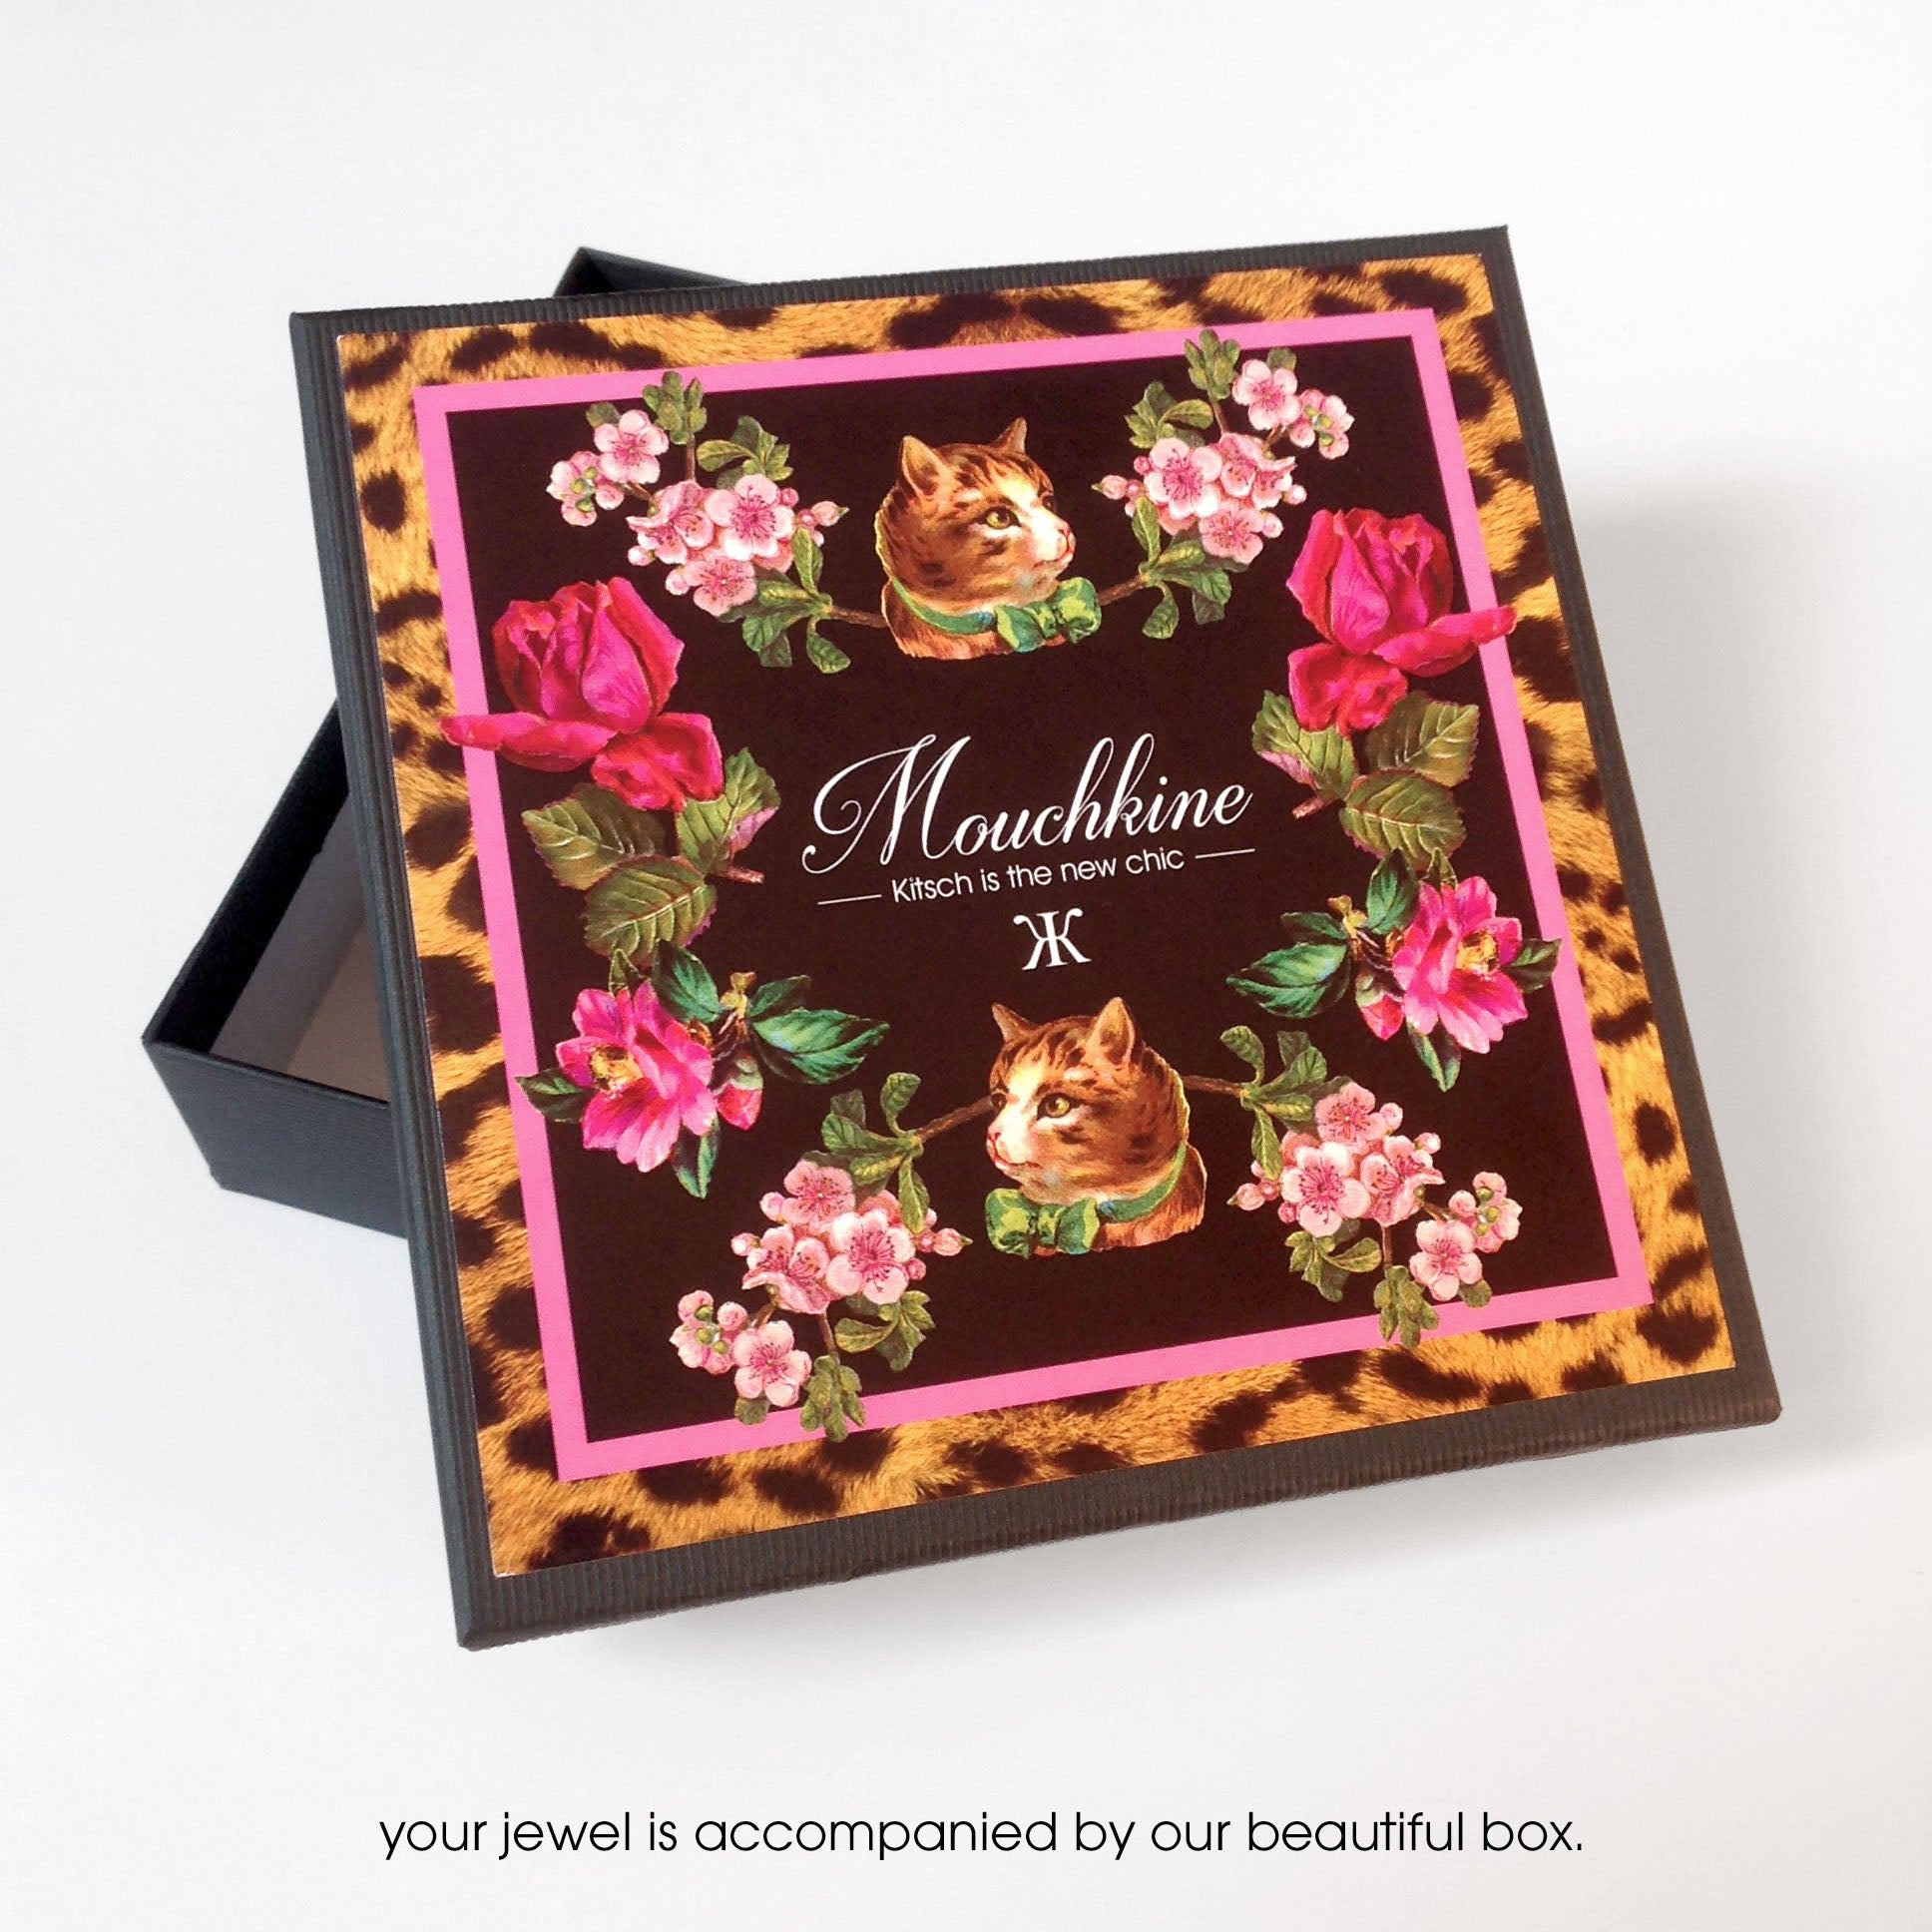 mouchkine jewelry paris sublime jewel packaging